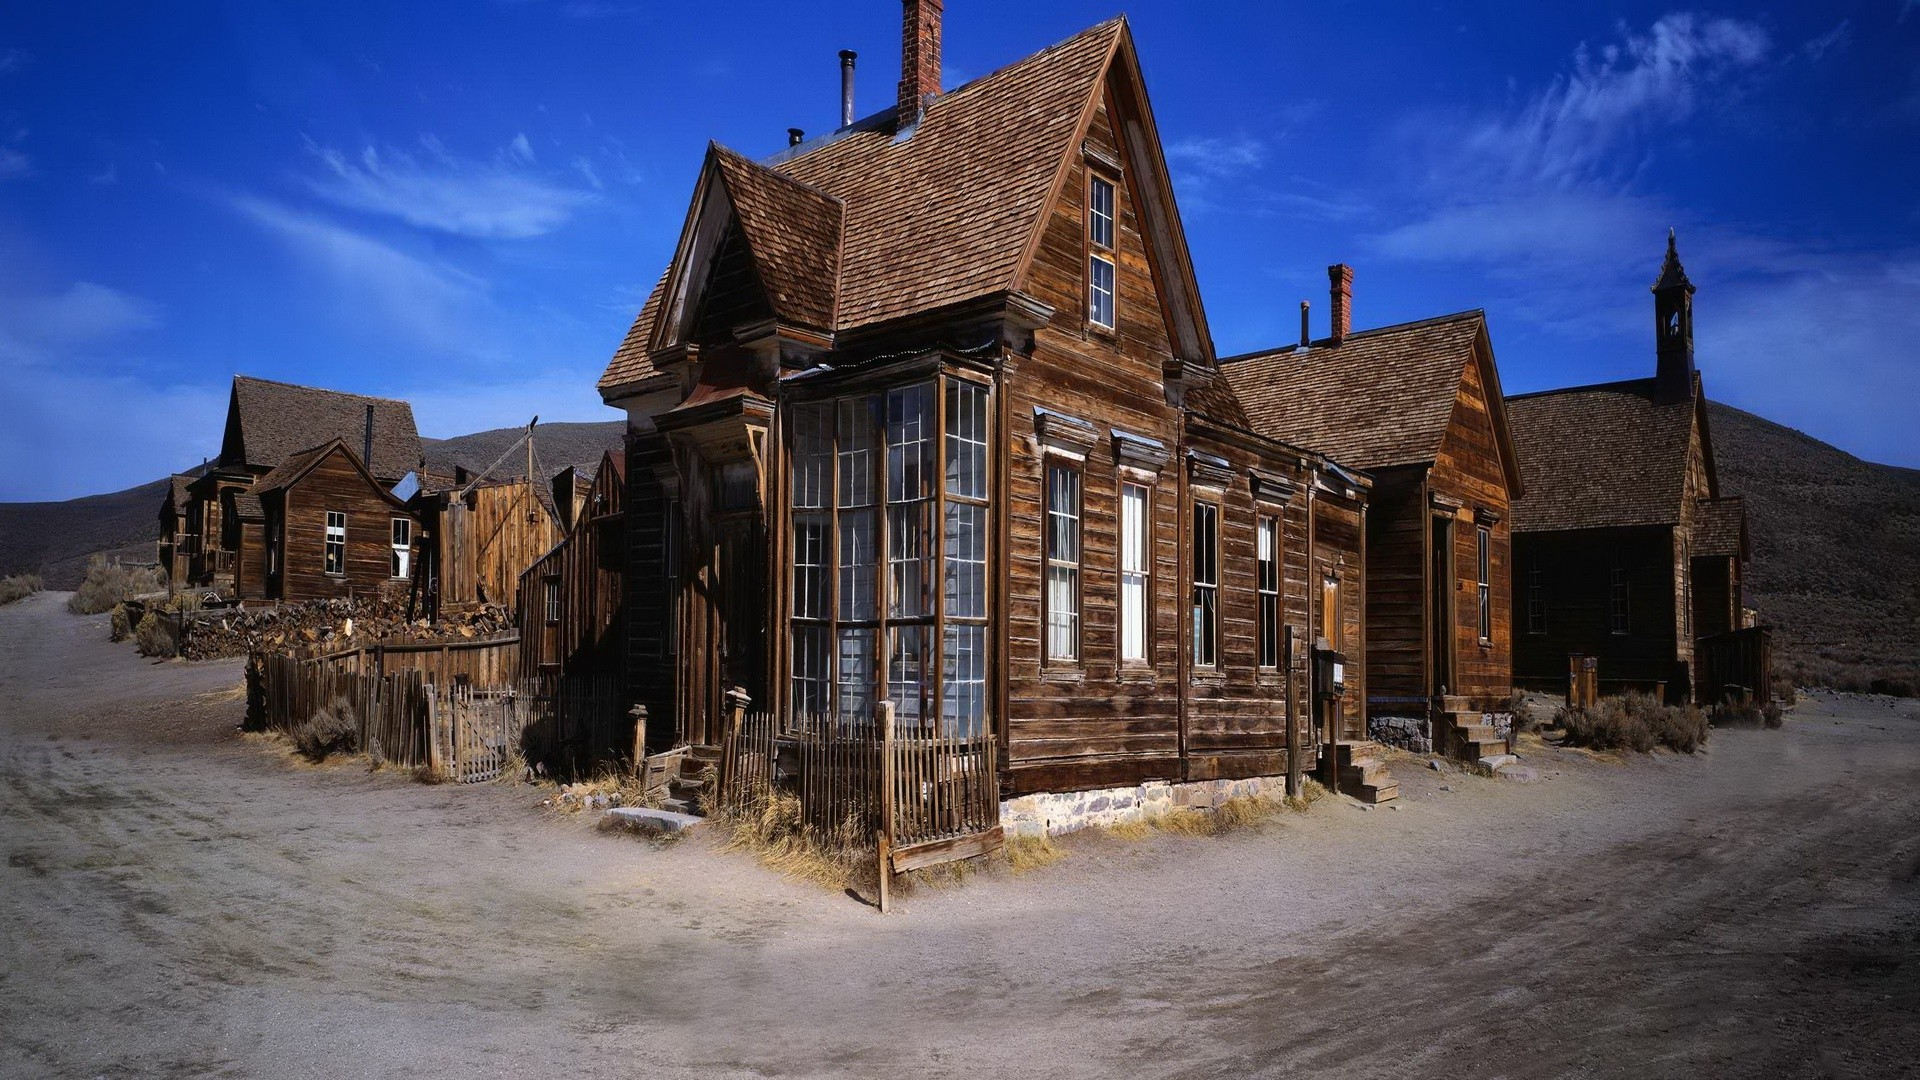 Ghost Town HD Drop-dead Gorgeous Wallpaper Free - Download Ghost